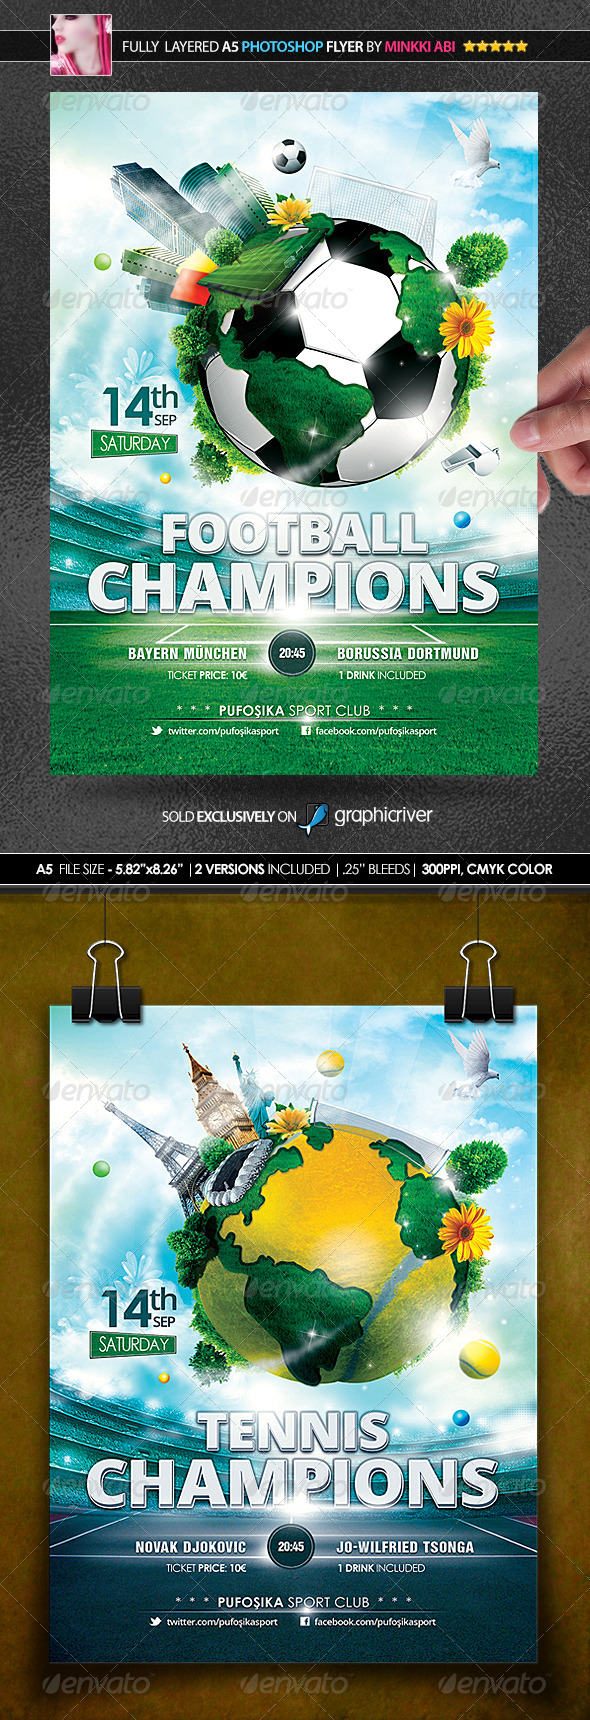 Sports World Vs.1 Poster/Flyer - Sports Events